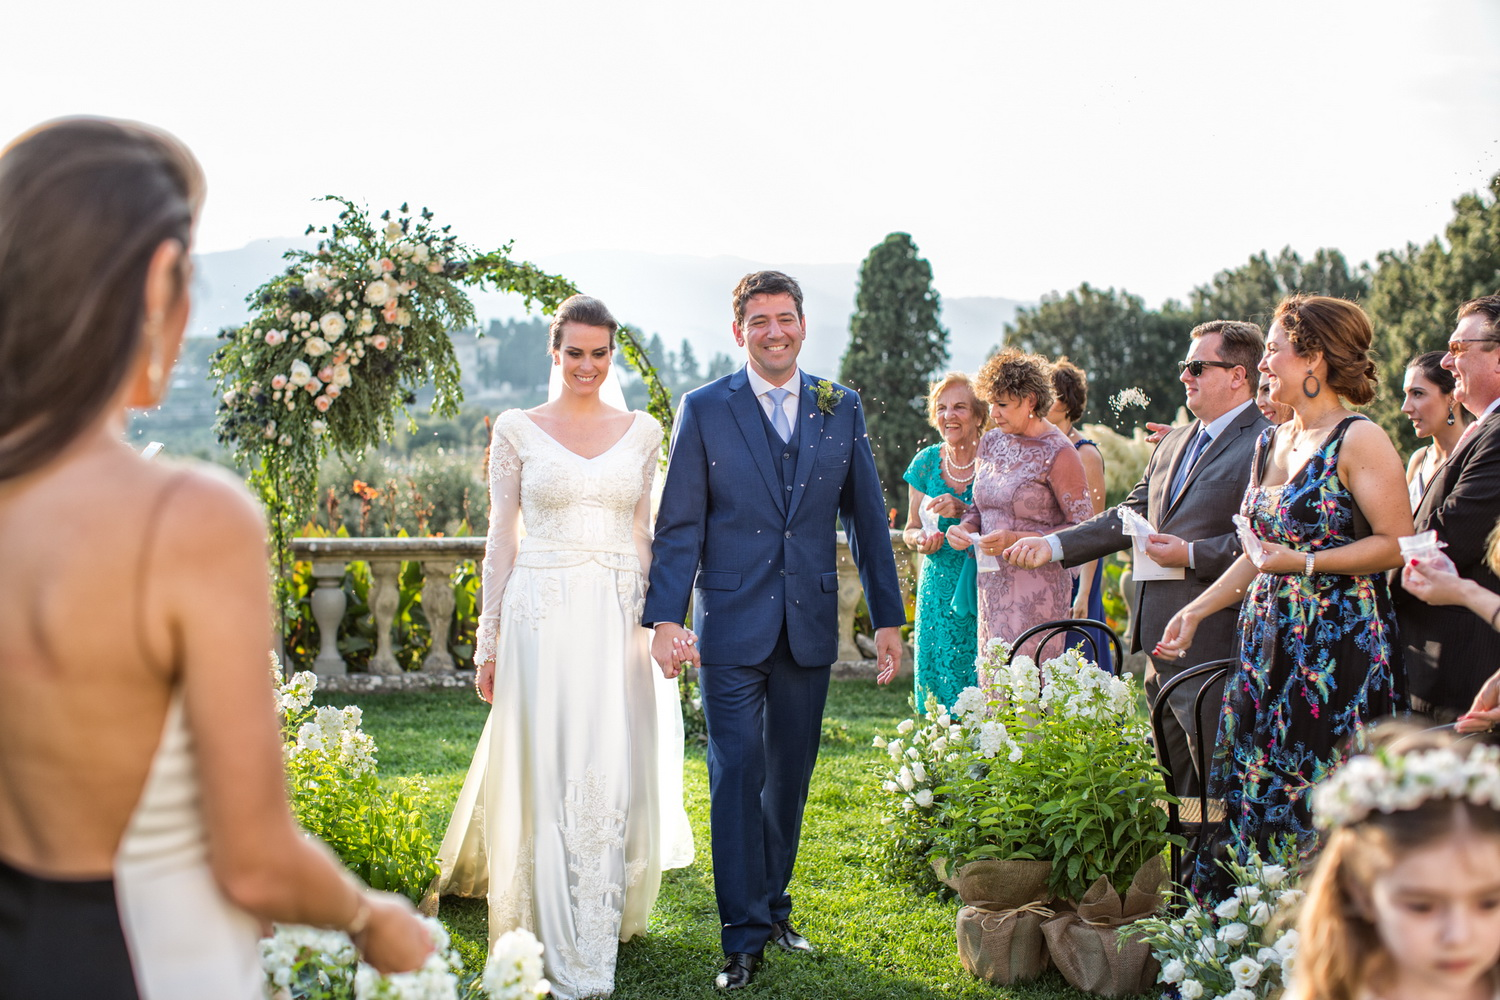 Destination Wedding Toscana | Caroline e Fernando destination wedding na toscana | caroline e fernando Destination Wedding na Toscana | Caroline e Fernando marco zammarchi destination wedding 33